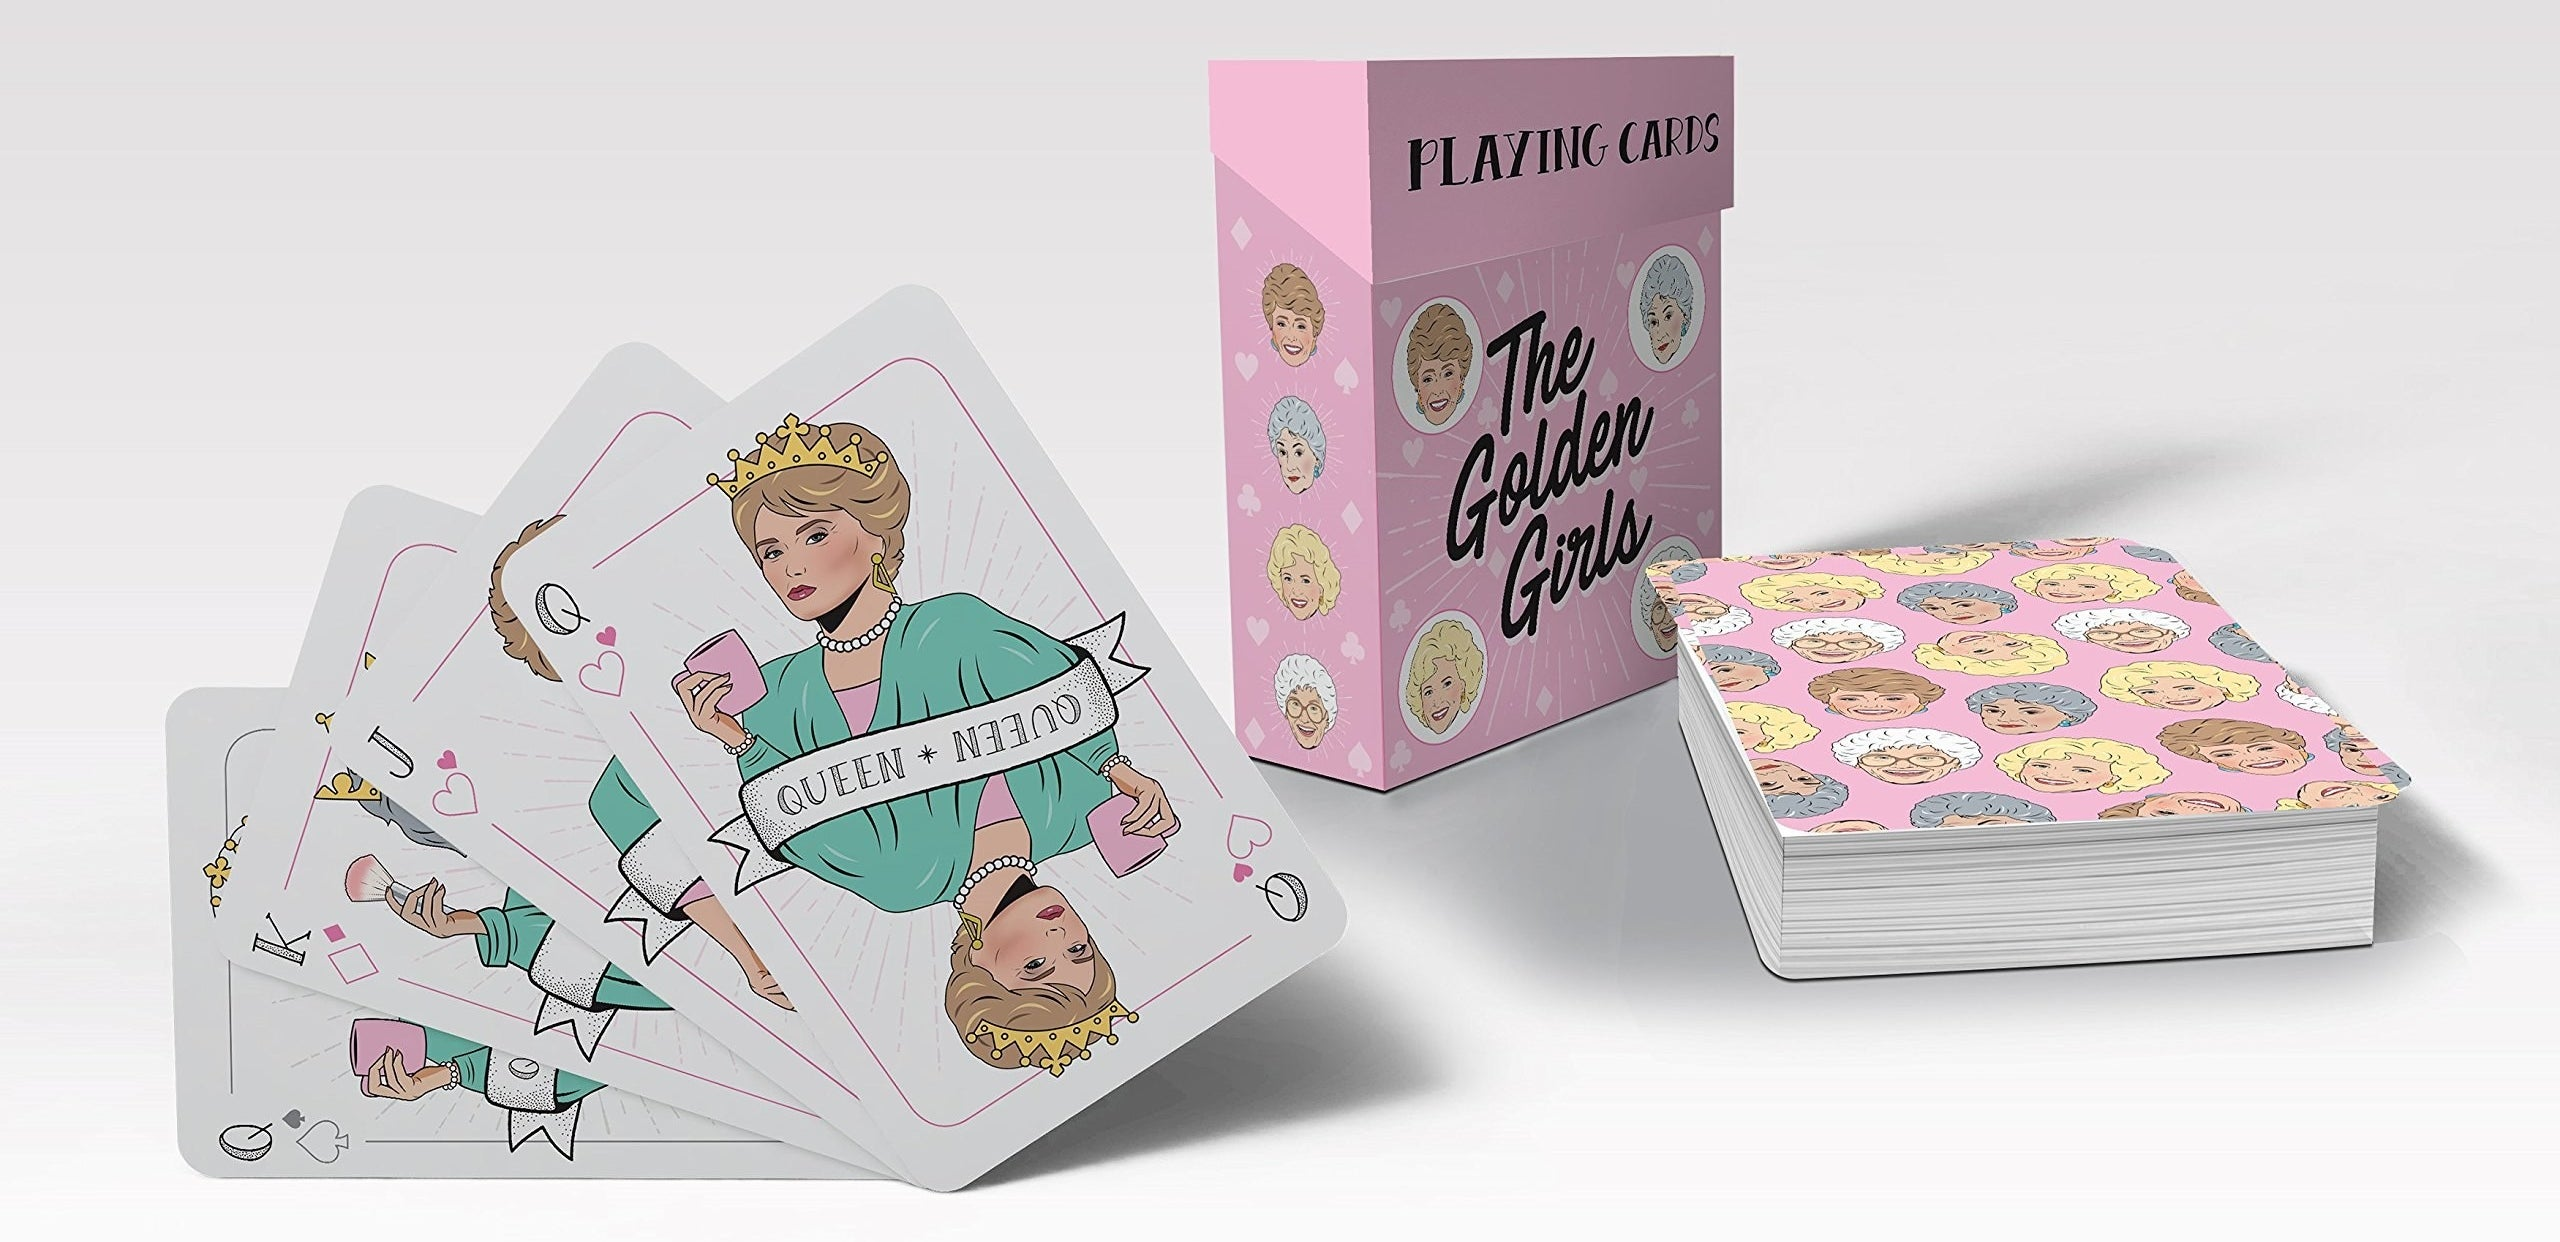 A deck of cards with the cast of Golden Girls on them